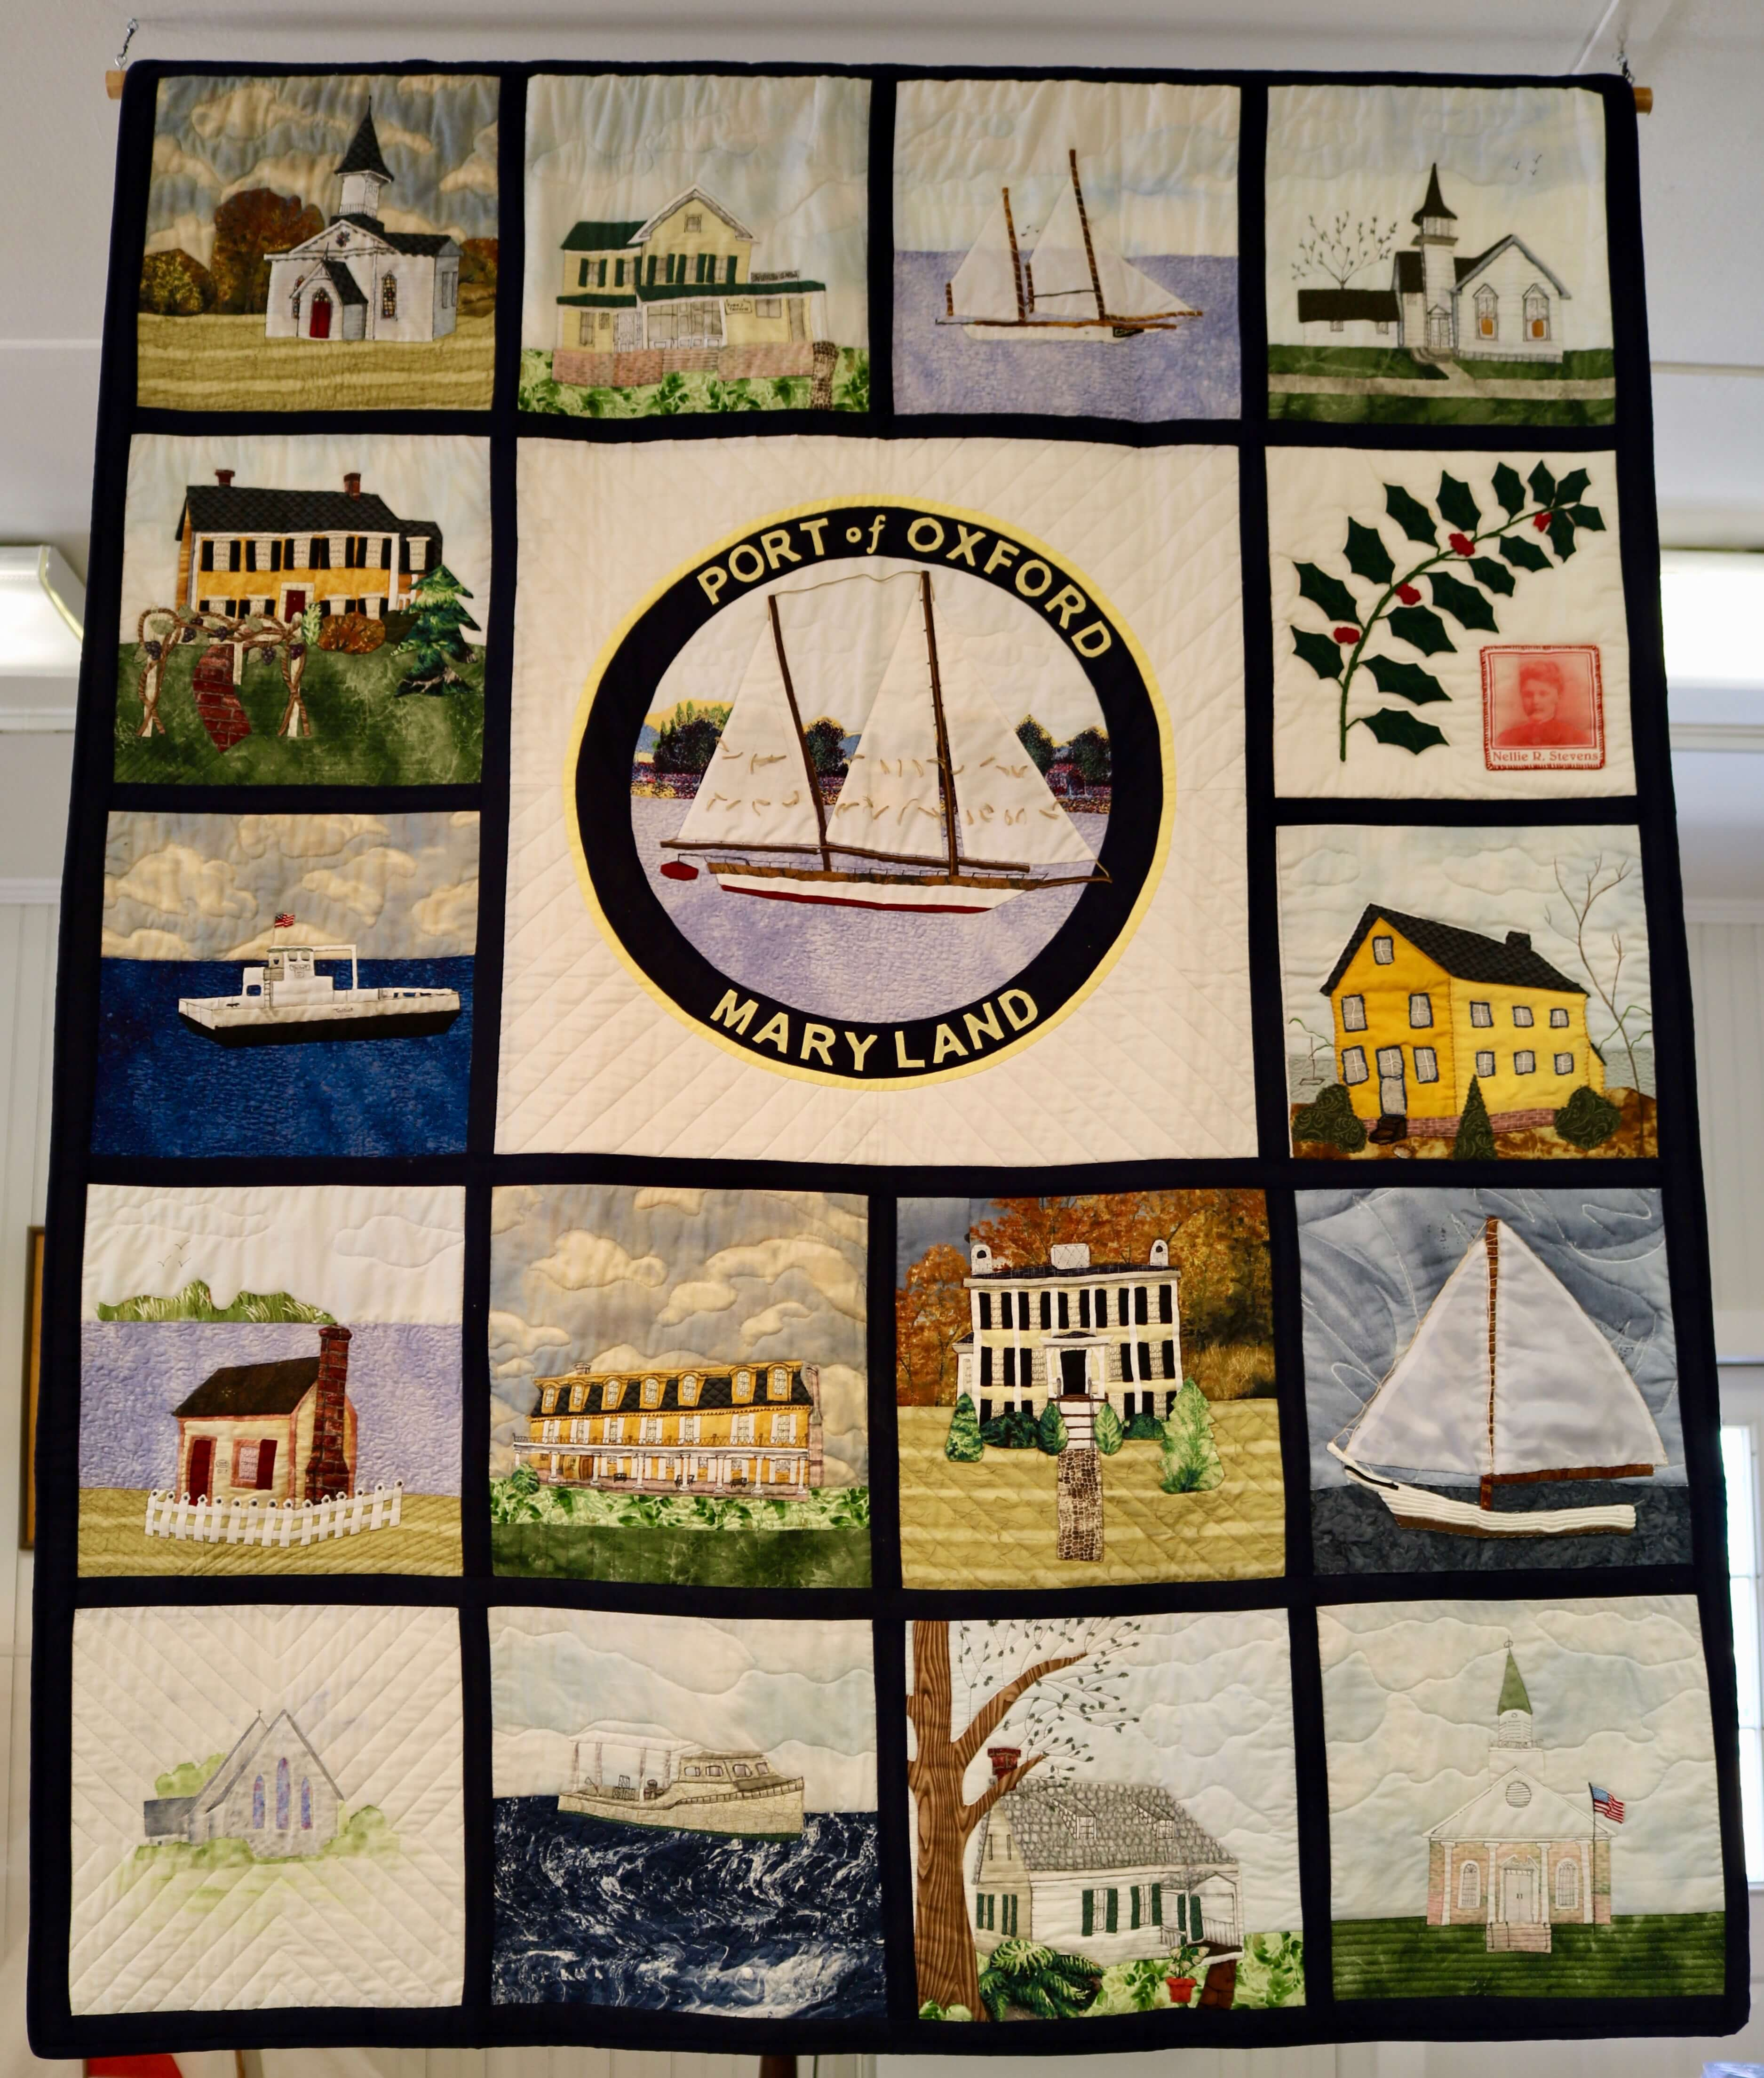 The Quilt Of Oxford The Oxford Museum